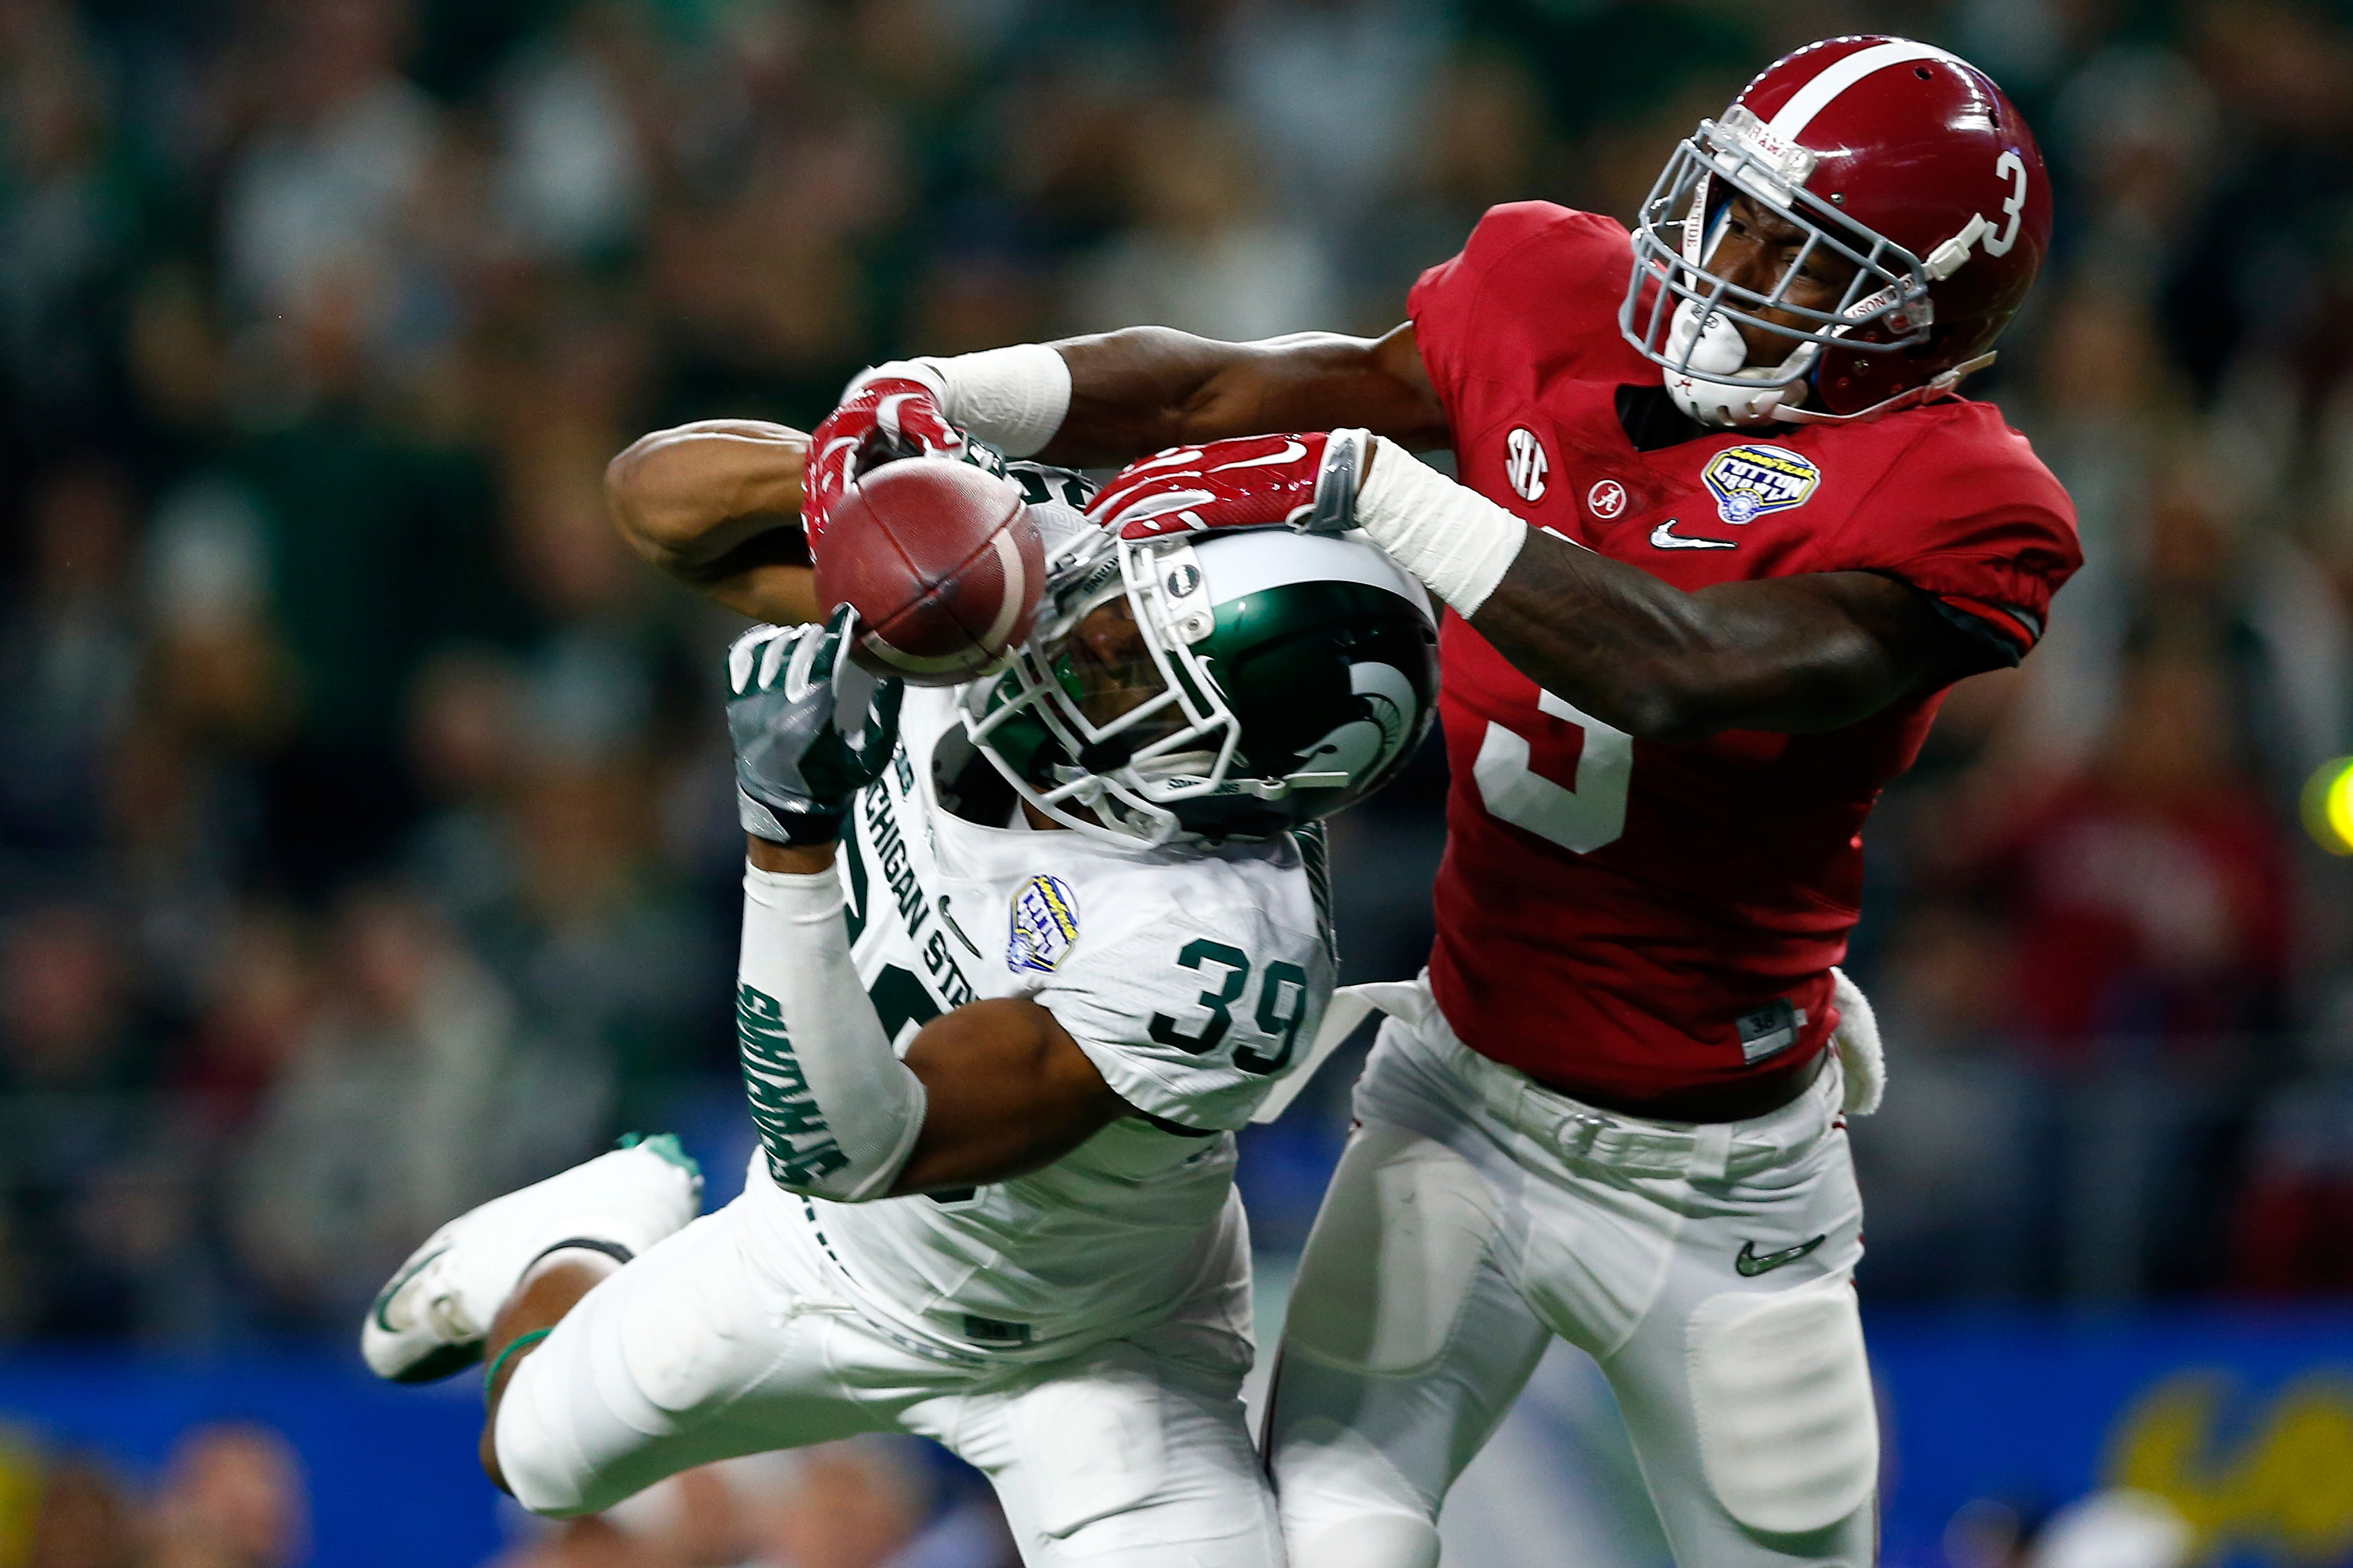 Michigan State Spartans cornerback Jermaine Edmondson (39) breaks up a pass intended for Alabama Crimson Tide wide receiver Calvin Ridley (3) during the Cotton Bowl NCAA college football playoff semifinal game on Thursday, Dec. 31, 2015, in Arlington, Texas. (Aaron M. Sprecher/NFL)